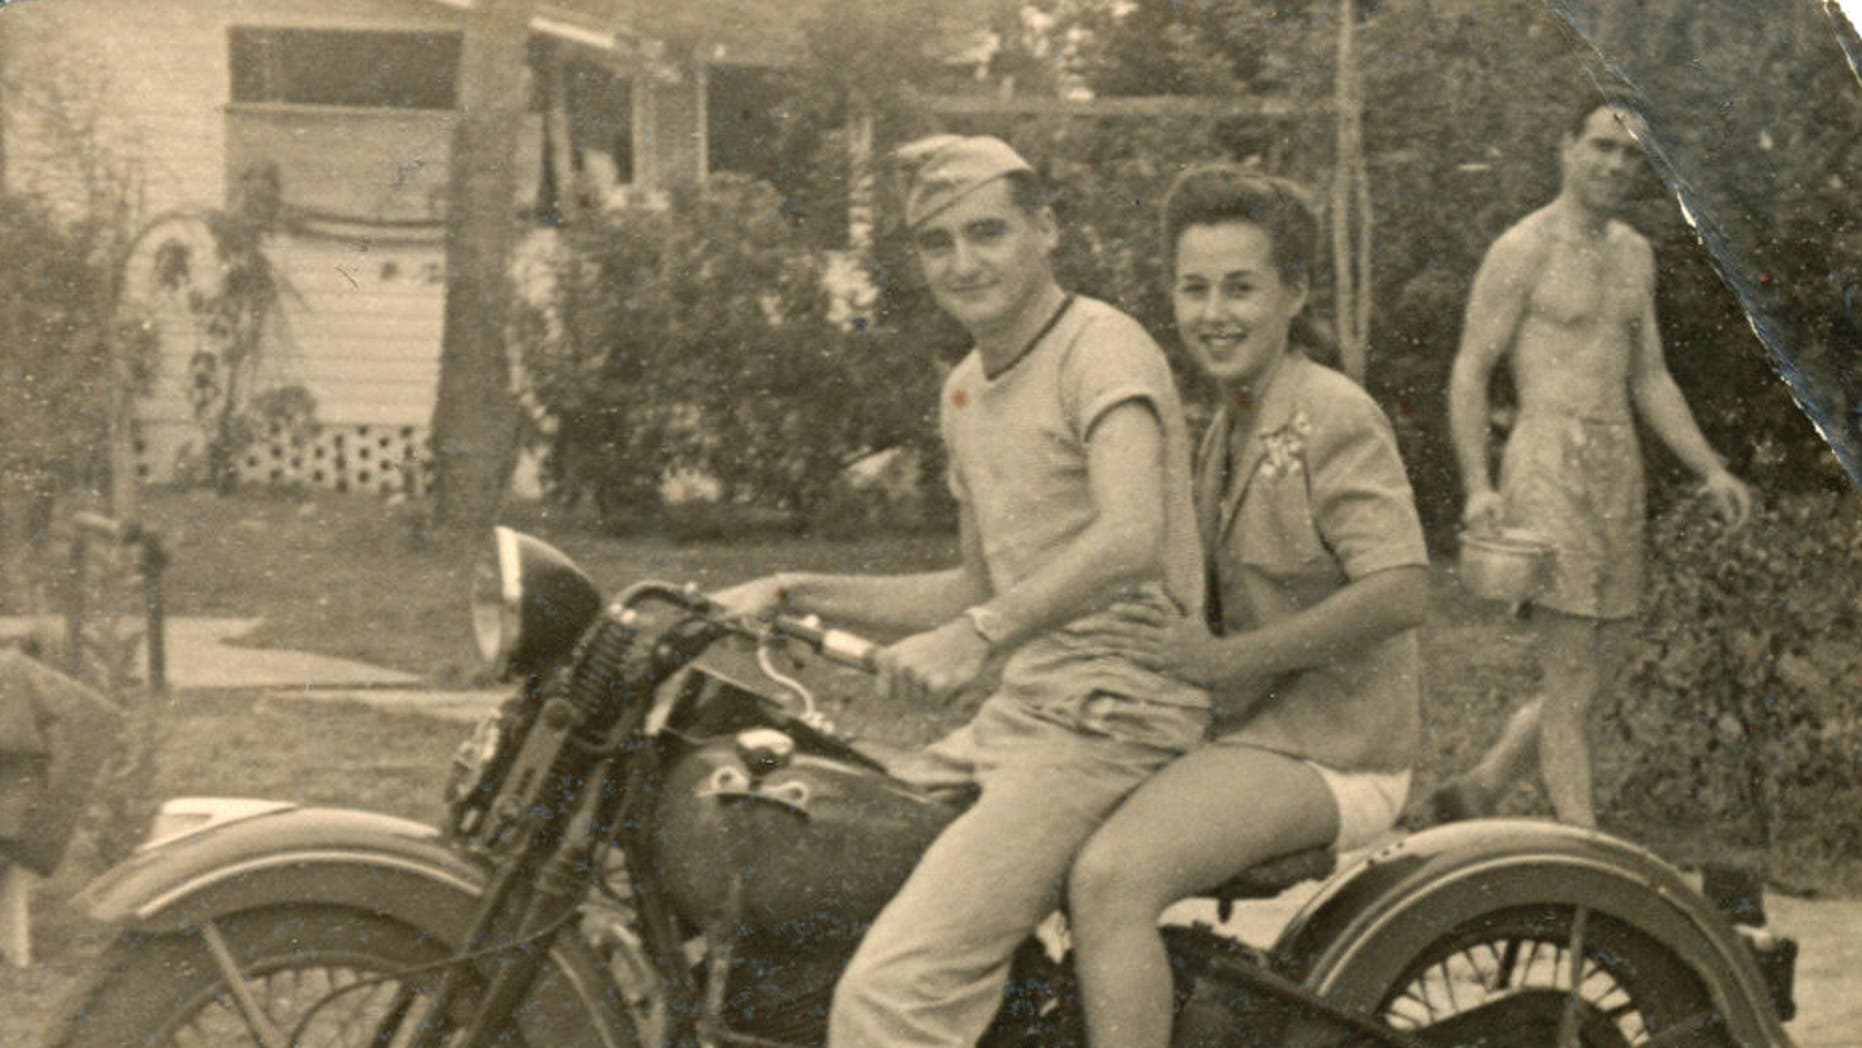 George and his wife, Betty Jo on his Harley Davidson after he got back home from the war and married her in 1946